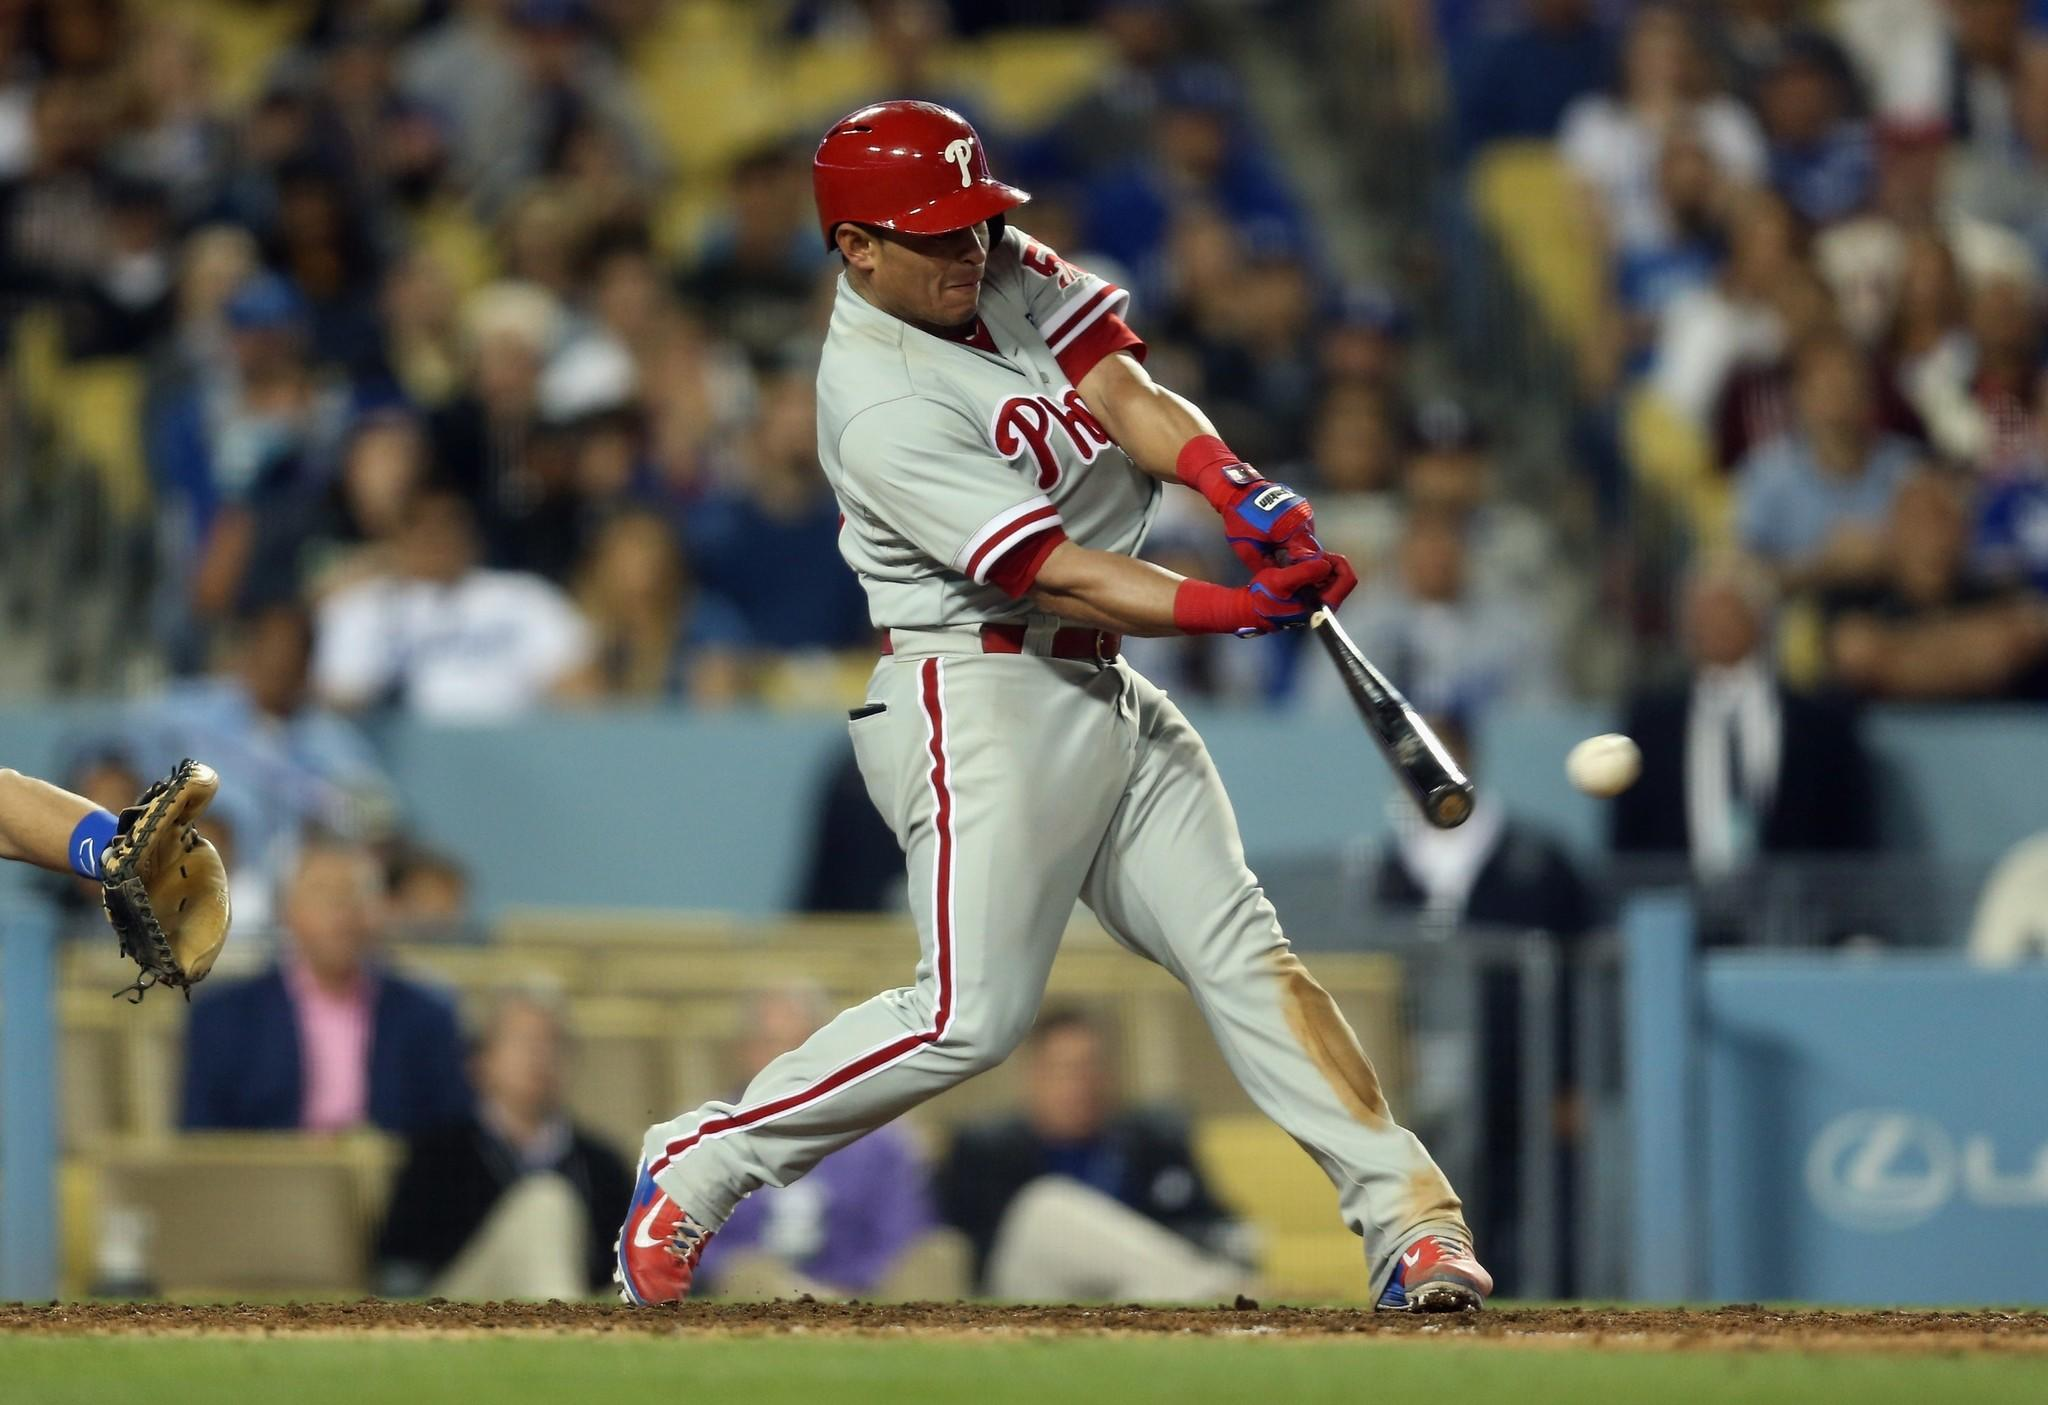 Carlos Ruiz's two-run double in the ninth inning lead to a four run inning for the Phillies and a 7-3 victory over the Dodgers on Thursday at Dodger Stadium.